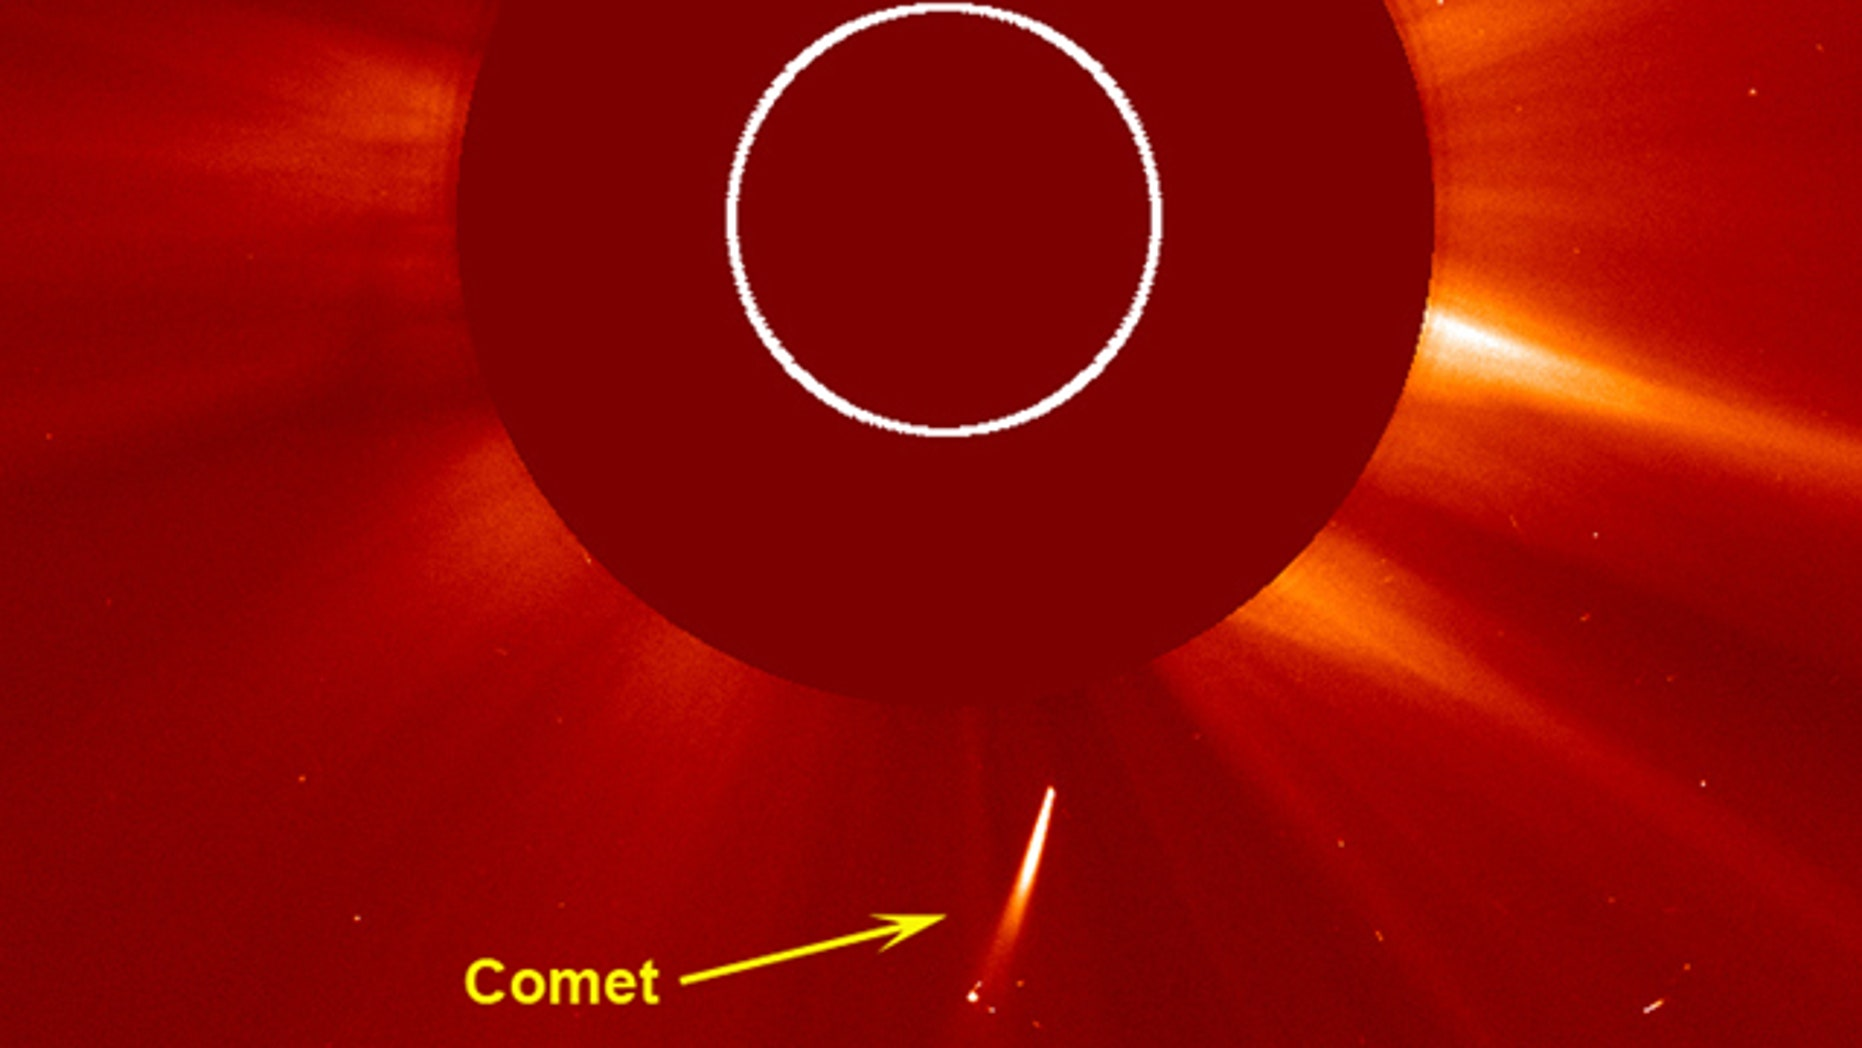 NASA captured a stunning video showing this fairly bright white comet as it dove towards the Sun -- and was never heard from again.